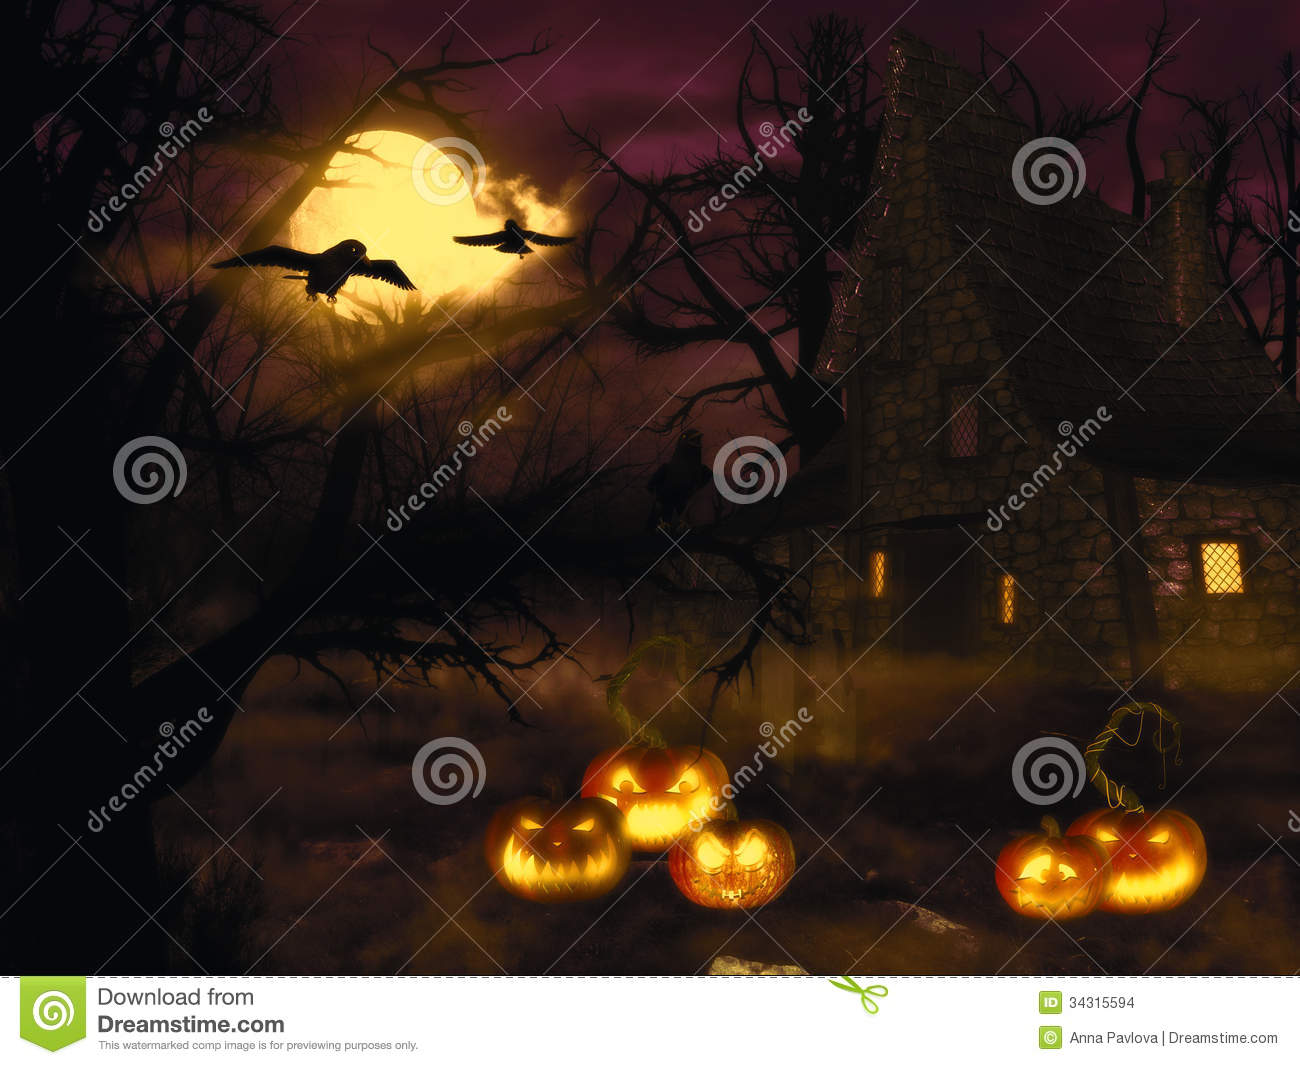 spooky witch house at night with halloween pumpkins in forest.